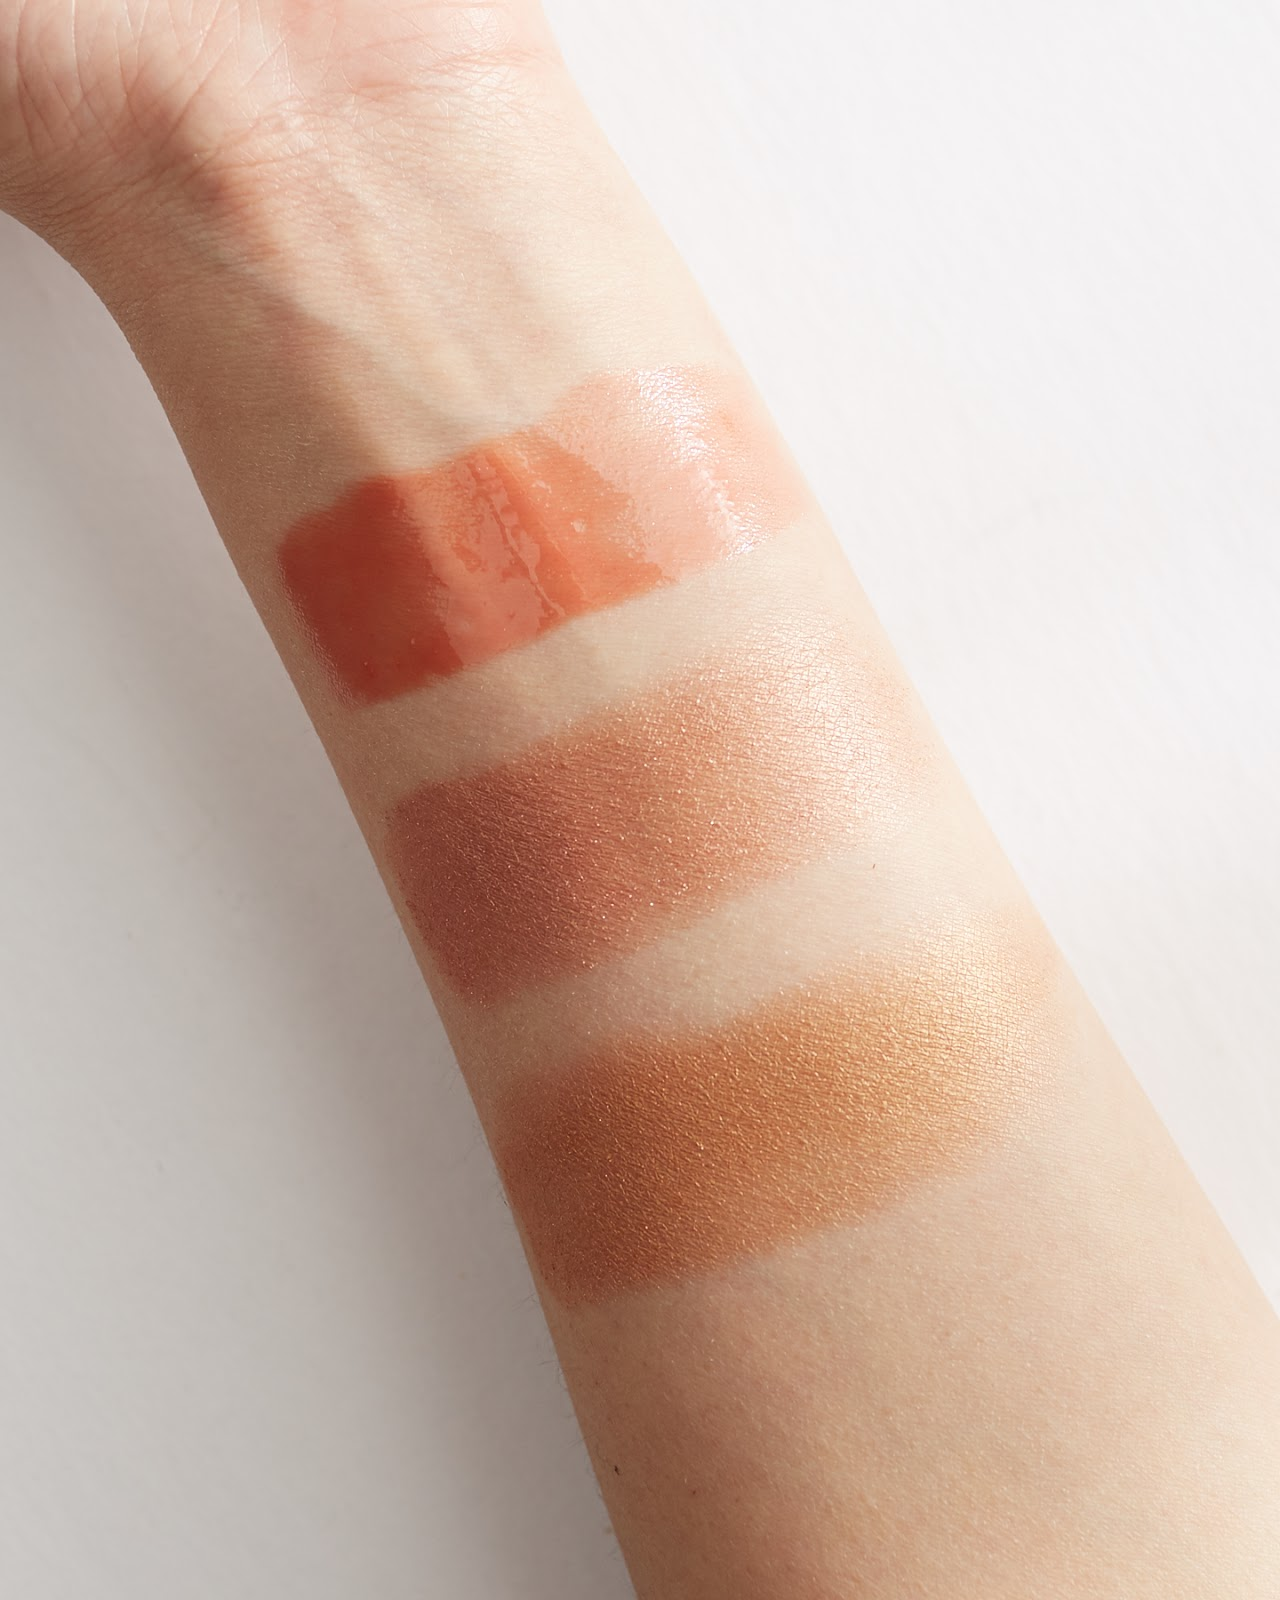 HAN Skin Care Cosmetics Eyeshadow and Lip Gloss Swatches Golden Glow Romance Peachy Nude all natural organic fruit dyed nontoxic beauty hellolindasau